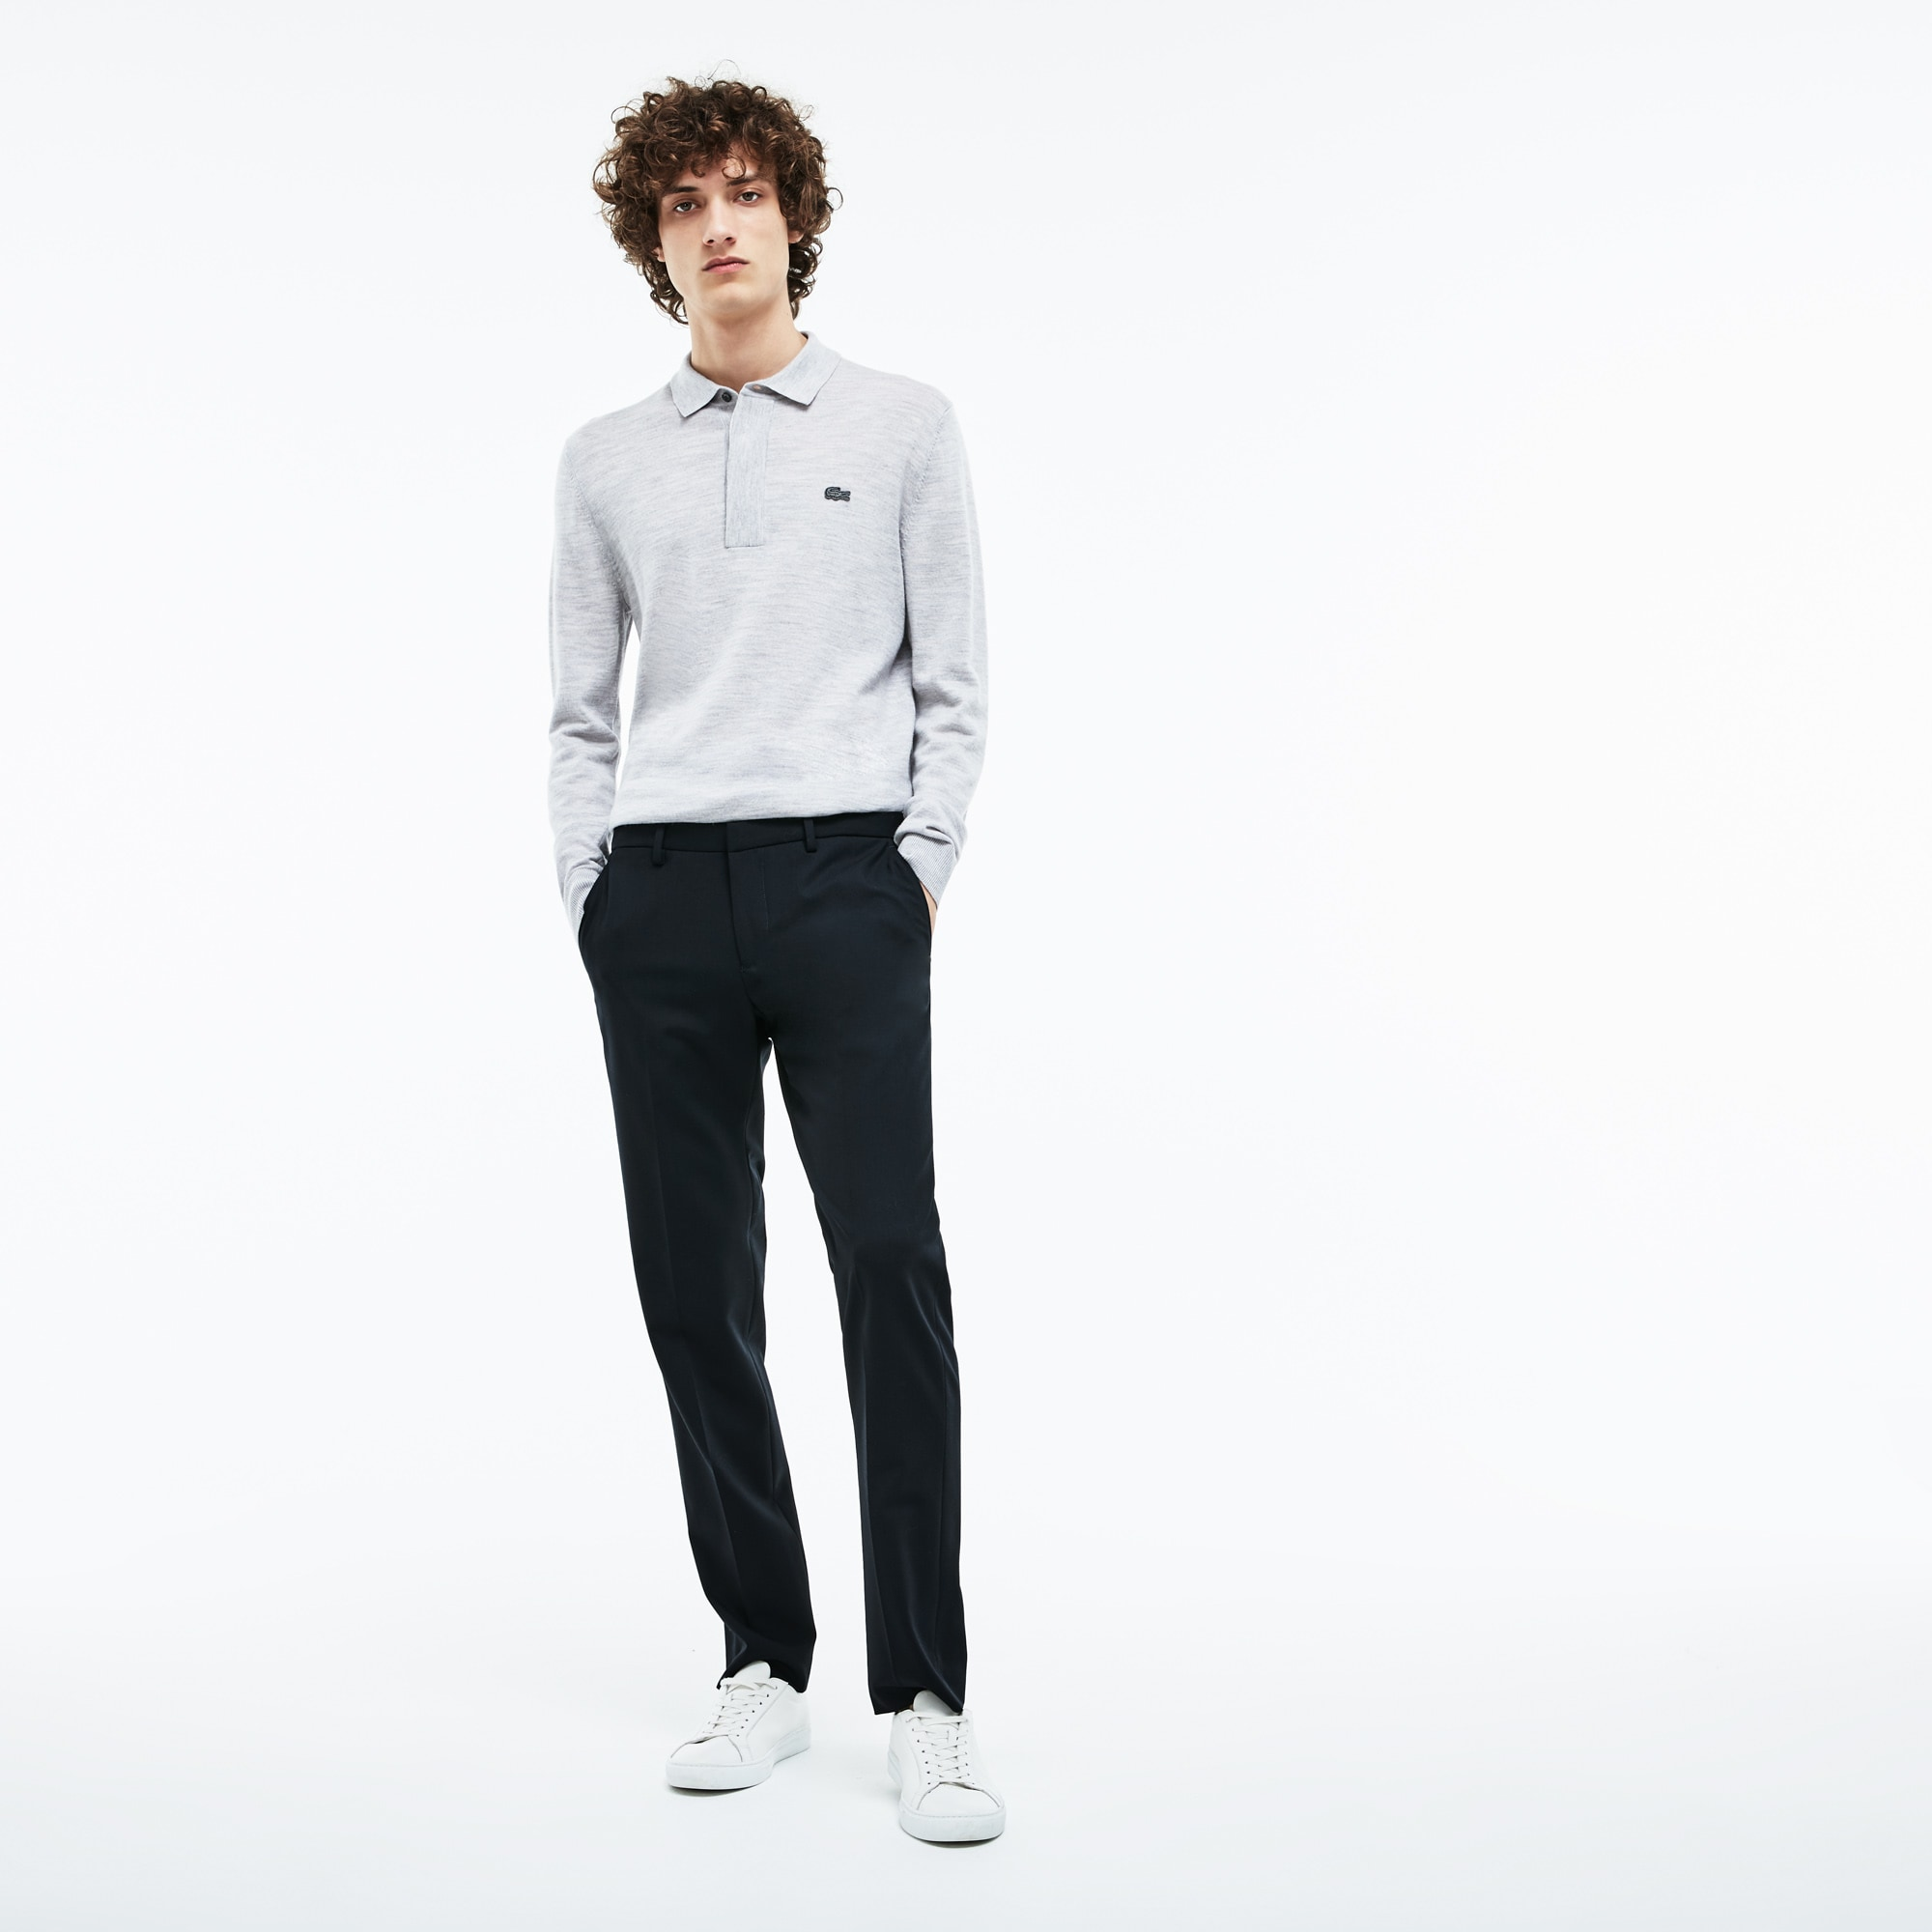 Pantalon chino slim fit en twill stretch uni